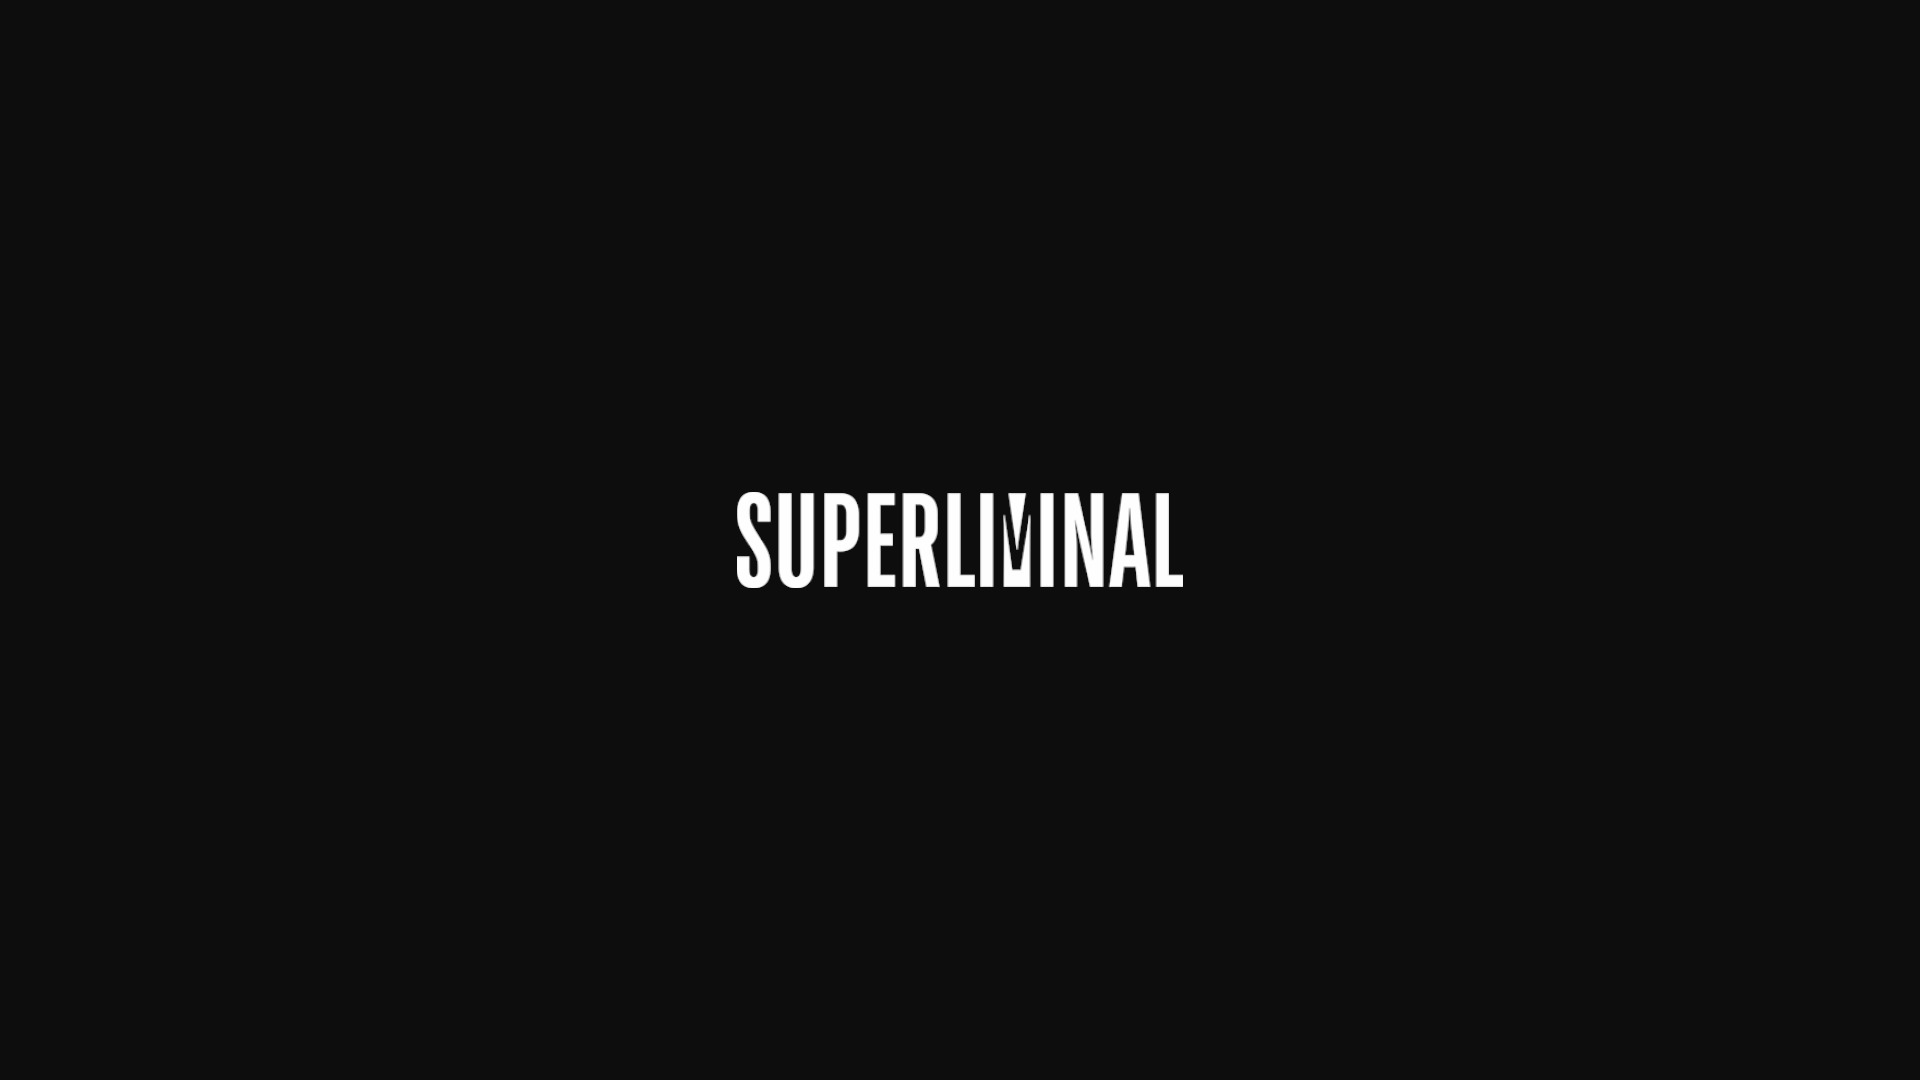 Superliminal titulo